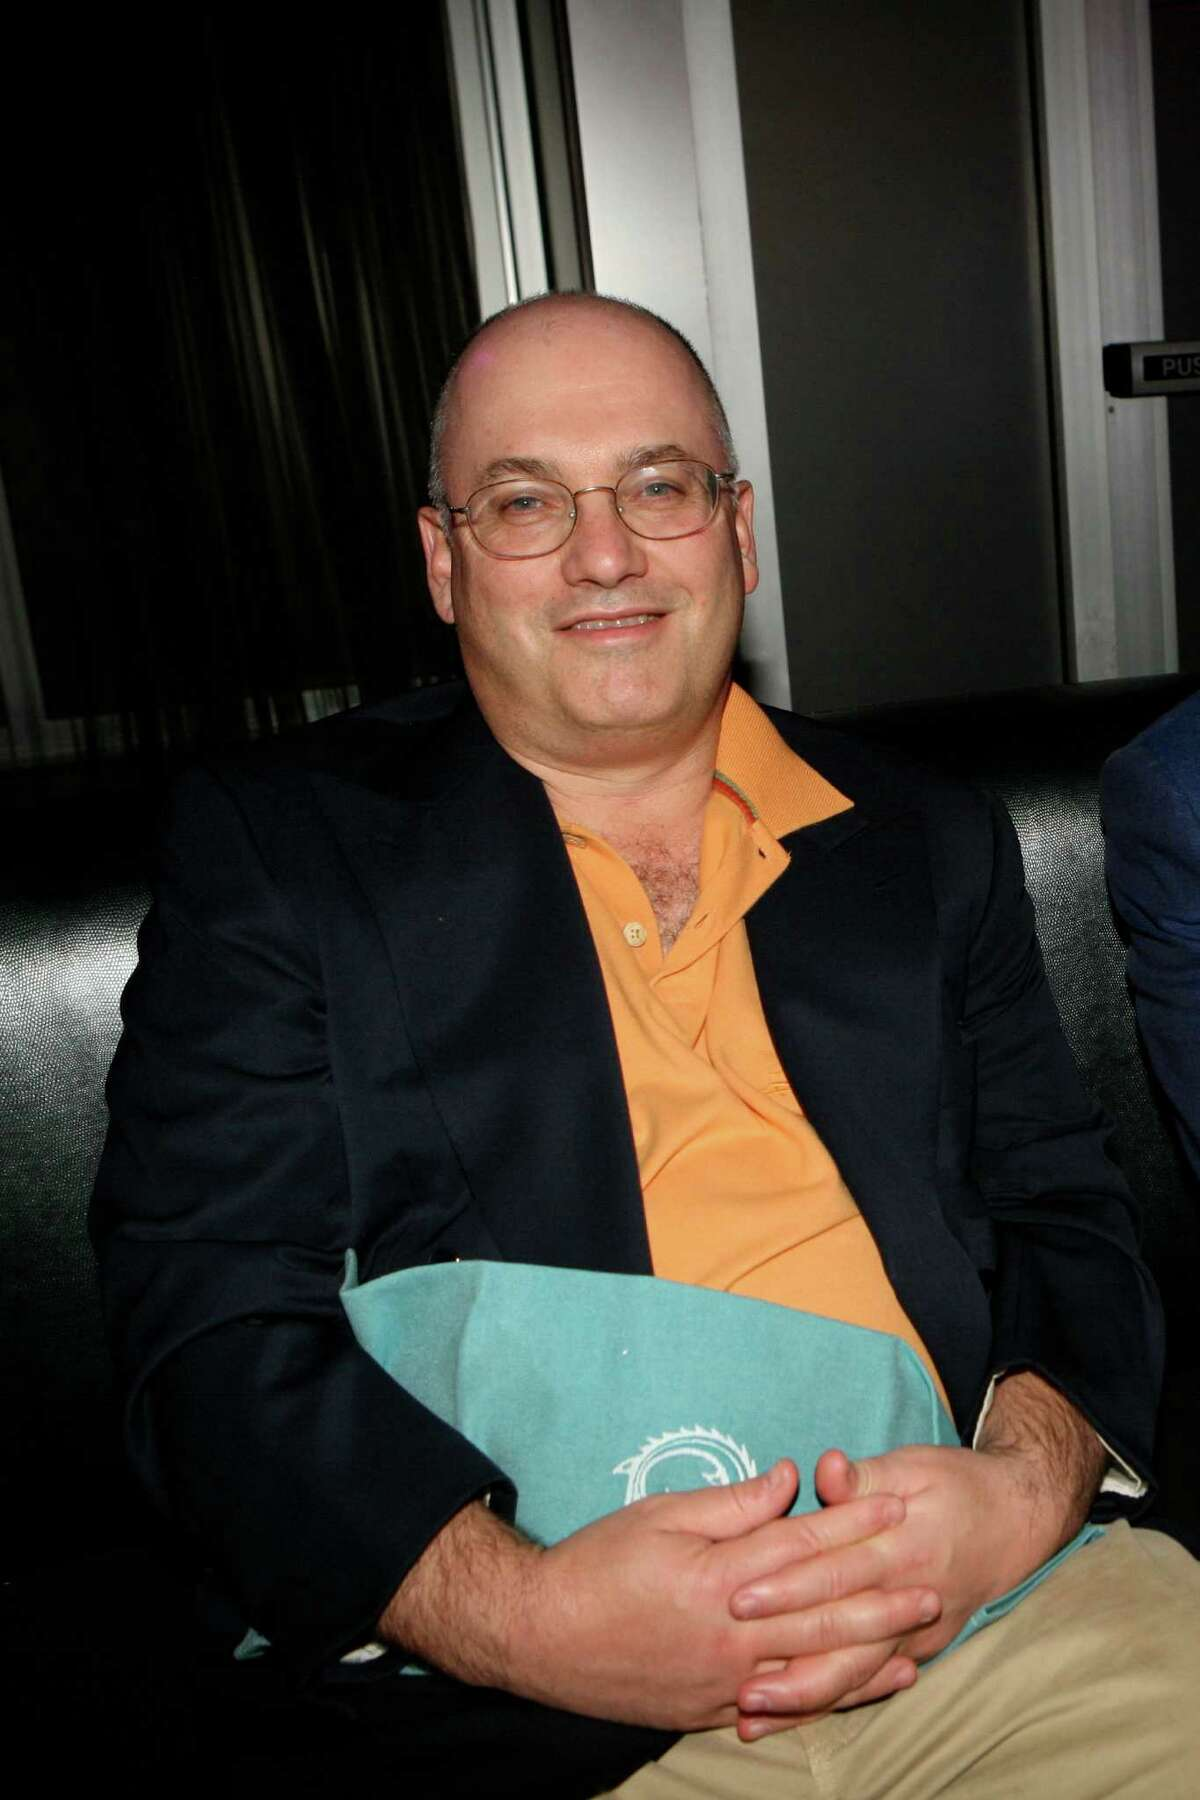 Steven Cohen, a hedge fund billionaire who gives heavily to Republicans, is one the those who have exploited an esoteric tax loophole that saved them millions in taxes.